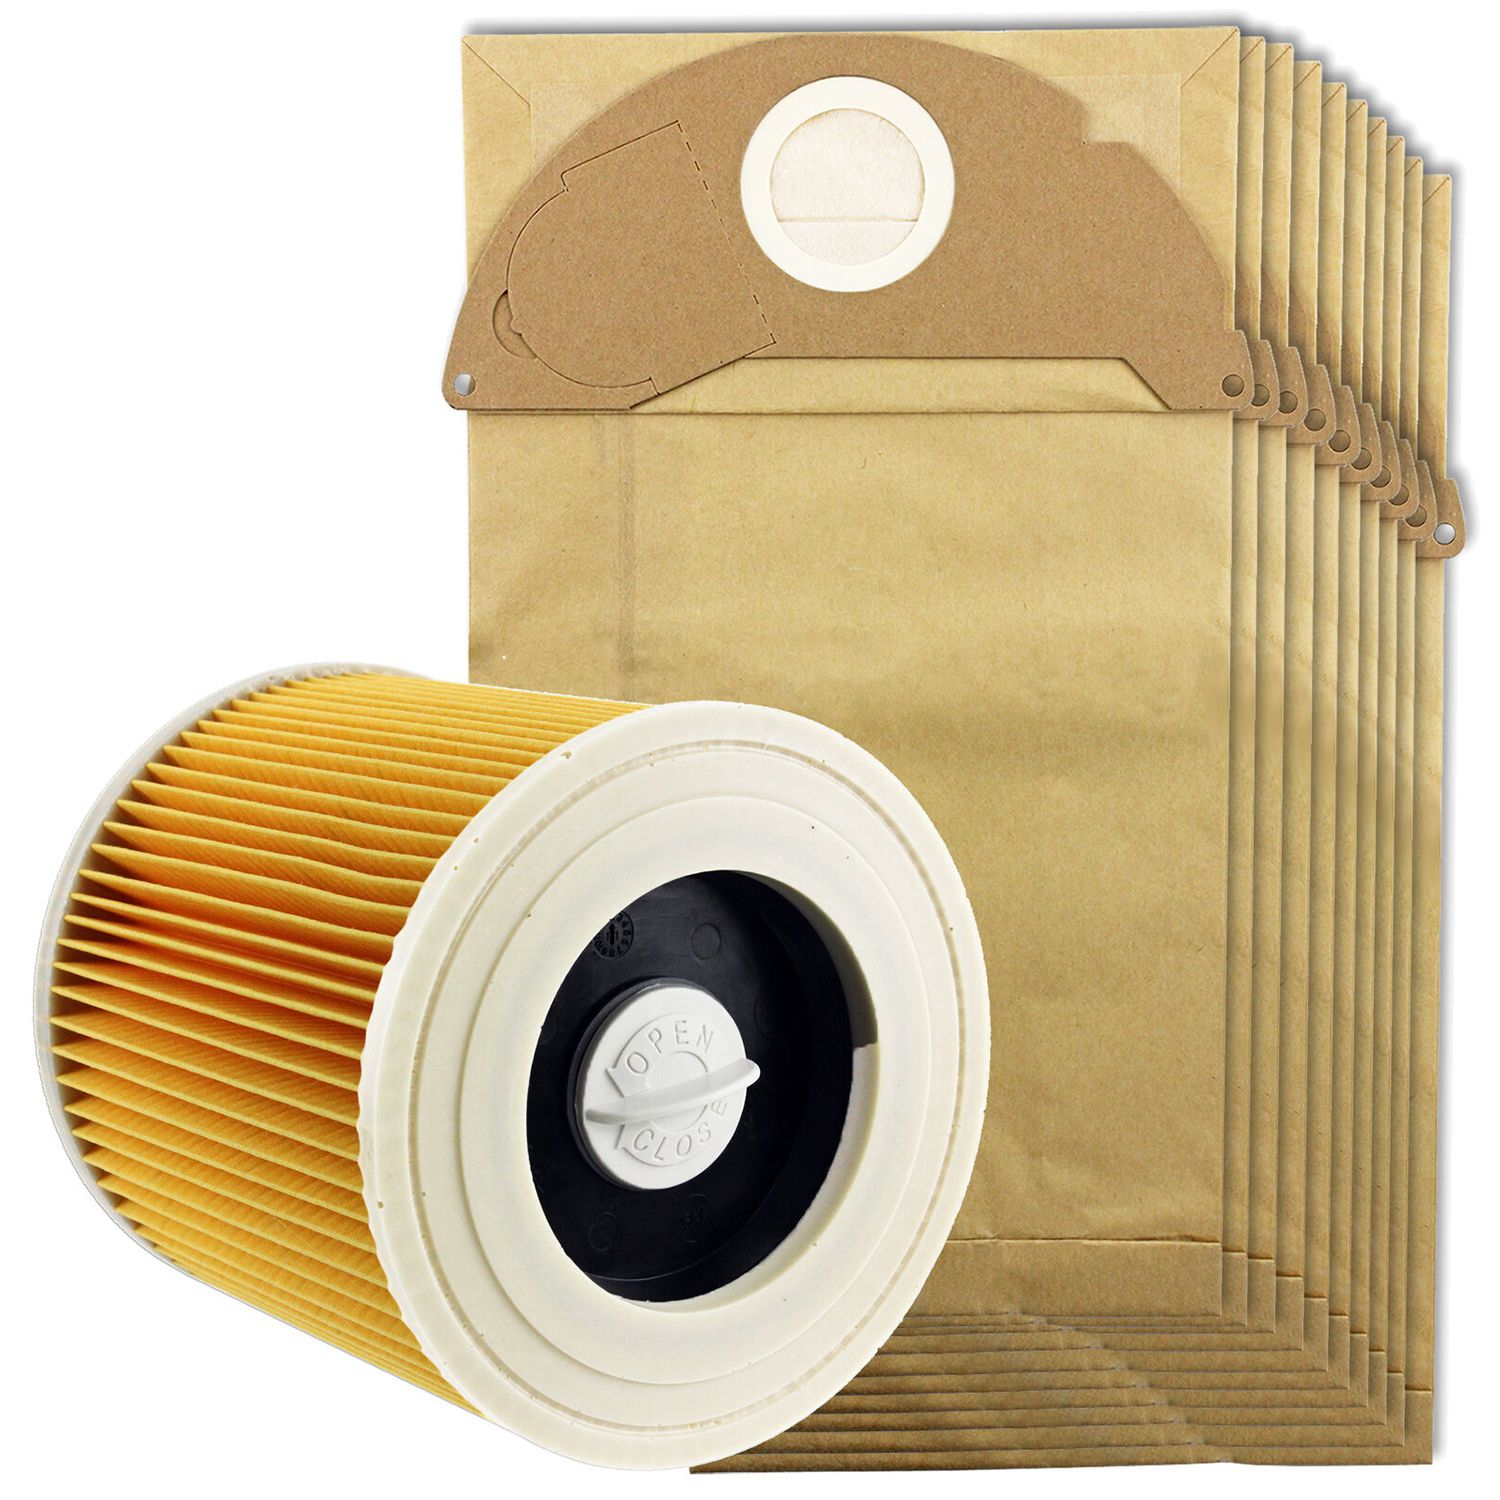 For Karcher Wet&Dry Wd2 Vacuum Cleaner Filter And 10x Dust BagsFor Karcher Wet&Dry Wd2 Vacuum Cleaner Filter And 10x Dust Bags